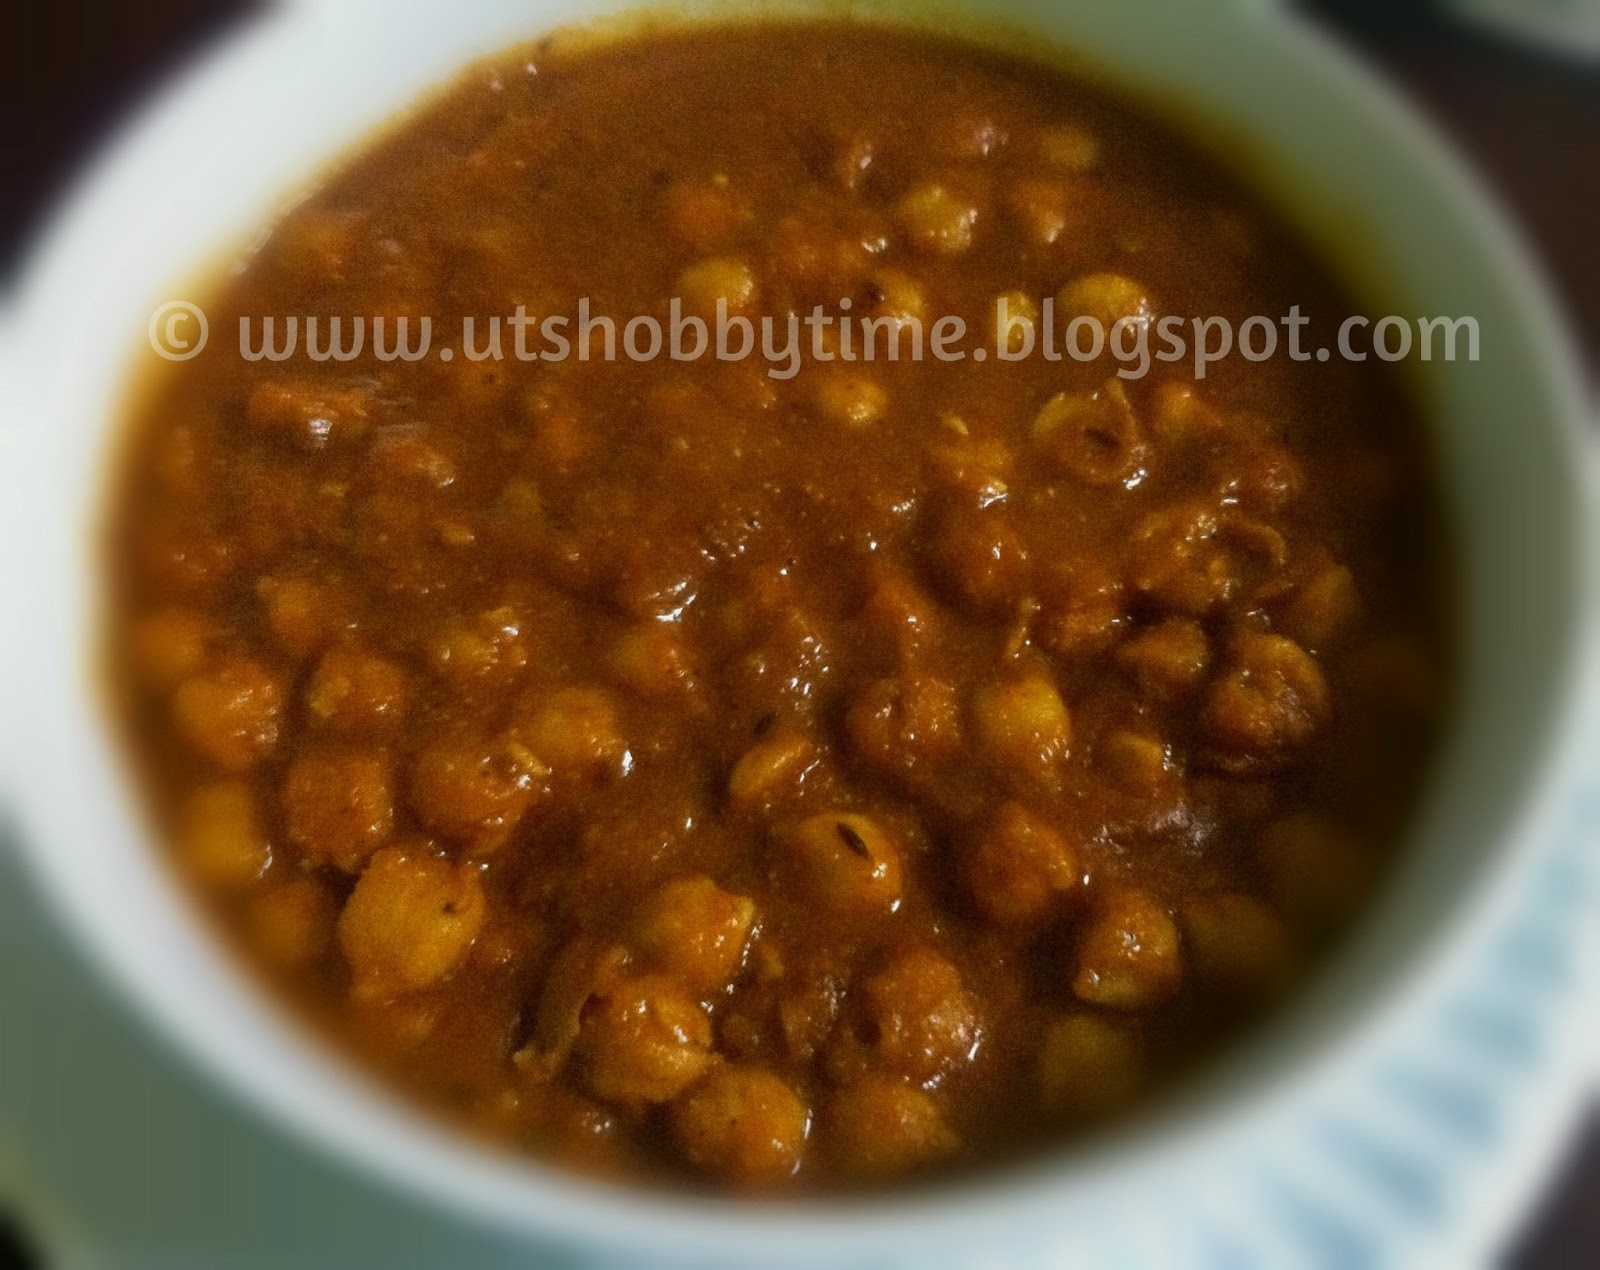 UTs Hobby Time***: Chana Masala